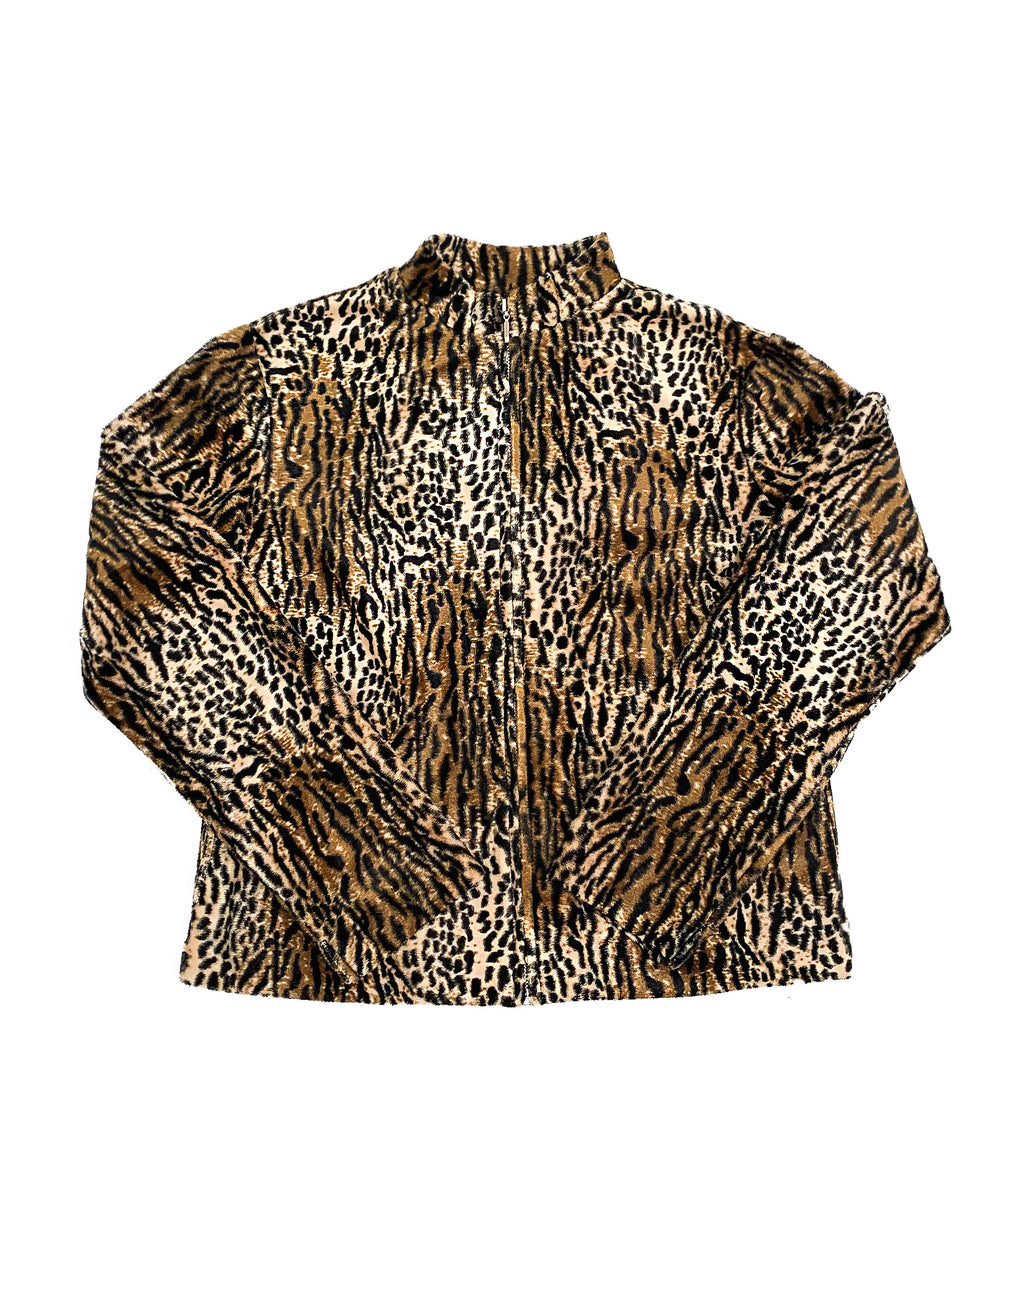 TEXTURED LEOPARD PRINT JACKET